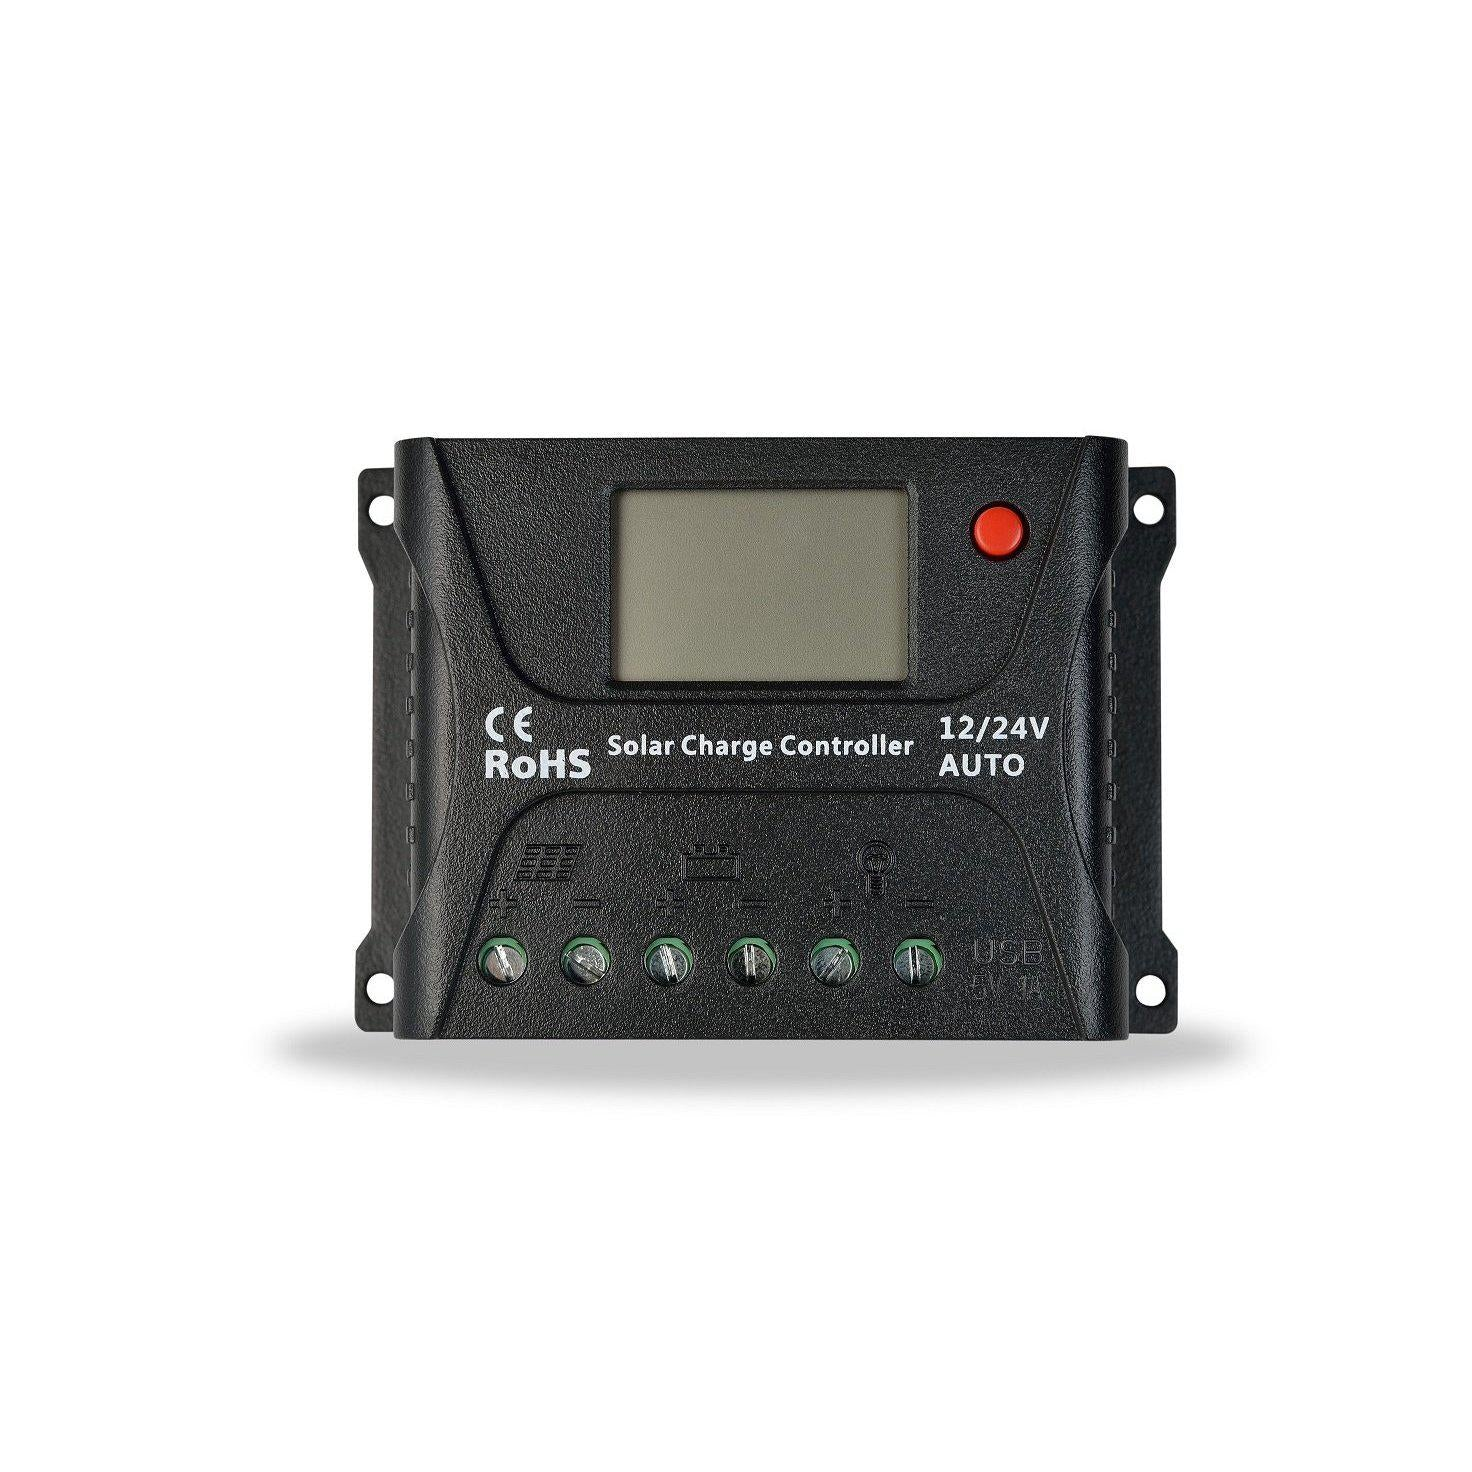 InstaPower 10A Solar Charge Controller 12V/24V With LCD Display - SBP Electrical